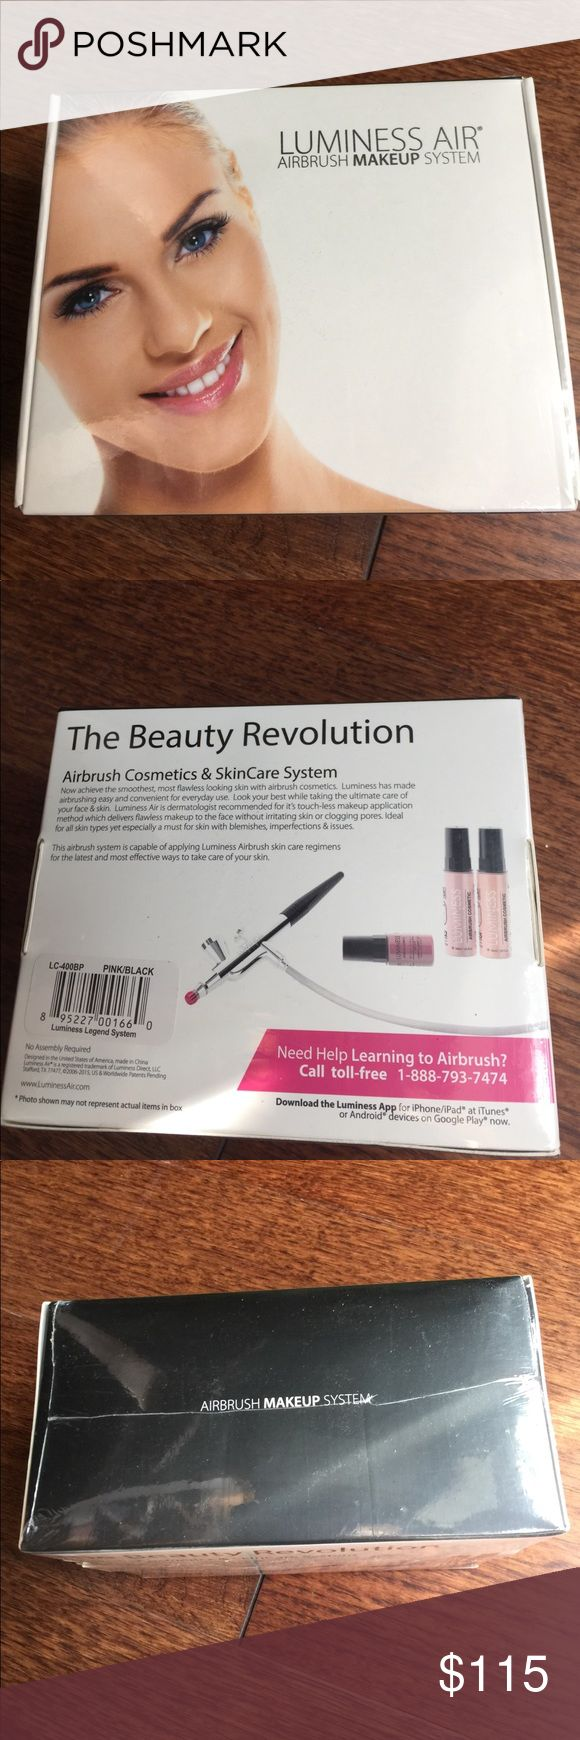 NWT Lumpiness airbrush makeup system Luminess airbrush cosmetic and skincare system.  NEW & STILL PLASTIC WRAPPED. No assembly required. Comes with Airbrush with the pink no drip tip for easier using & no dripping. luminess airbrushing system Makeup